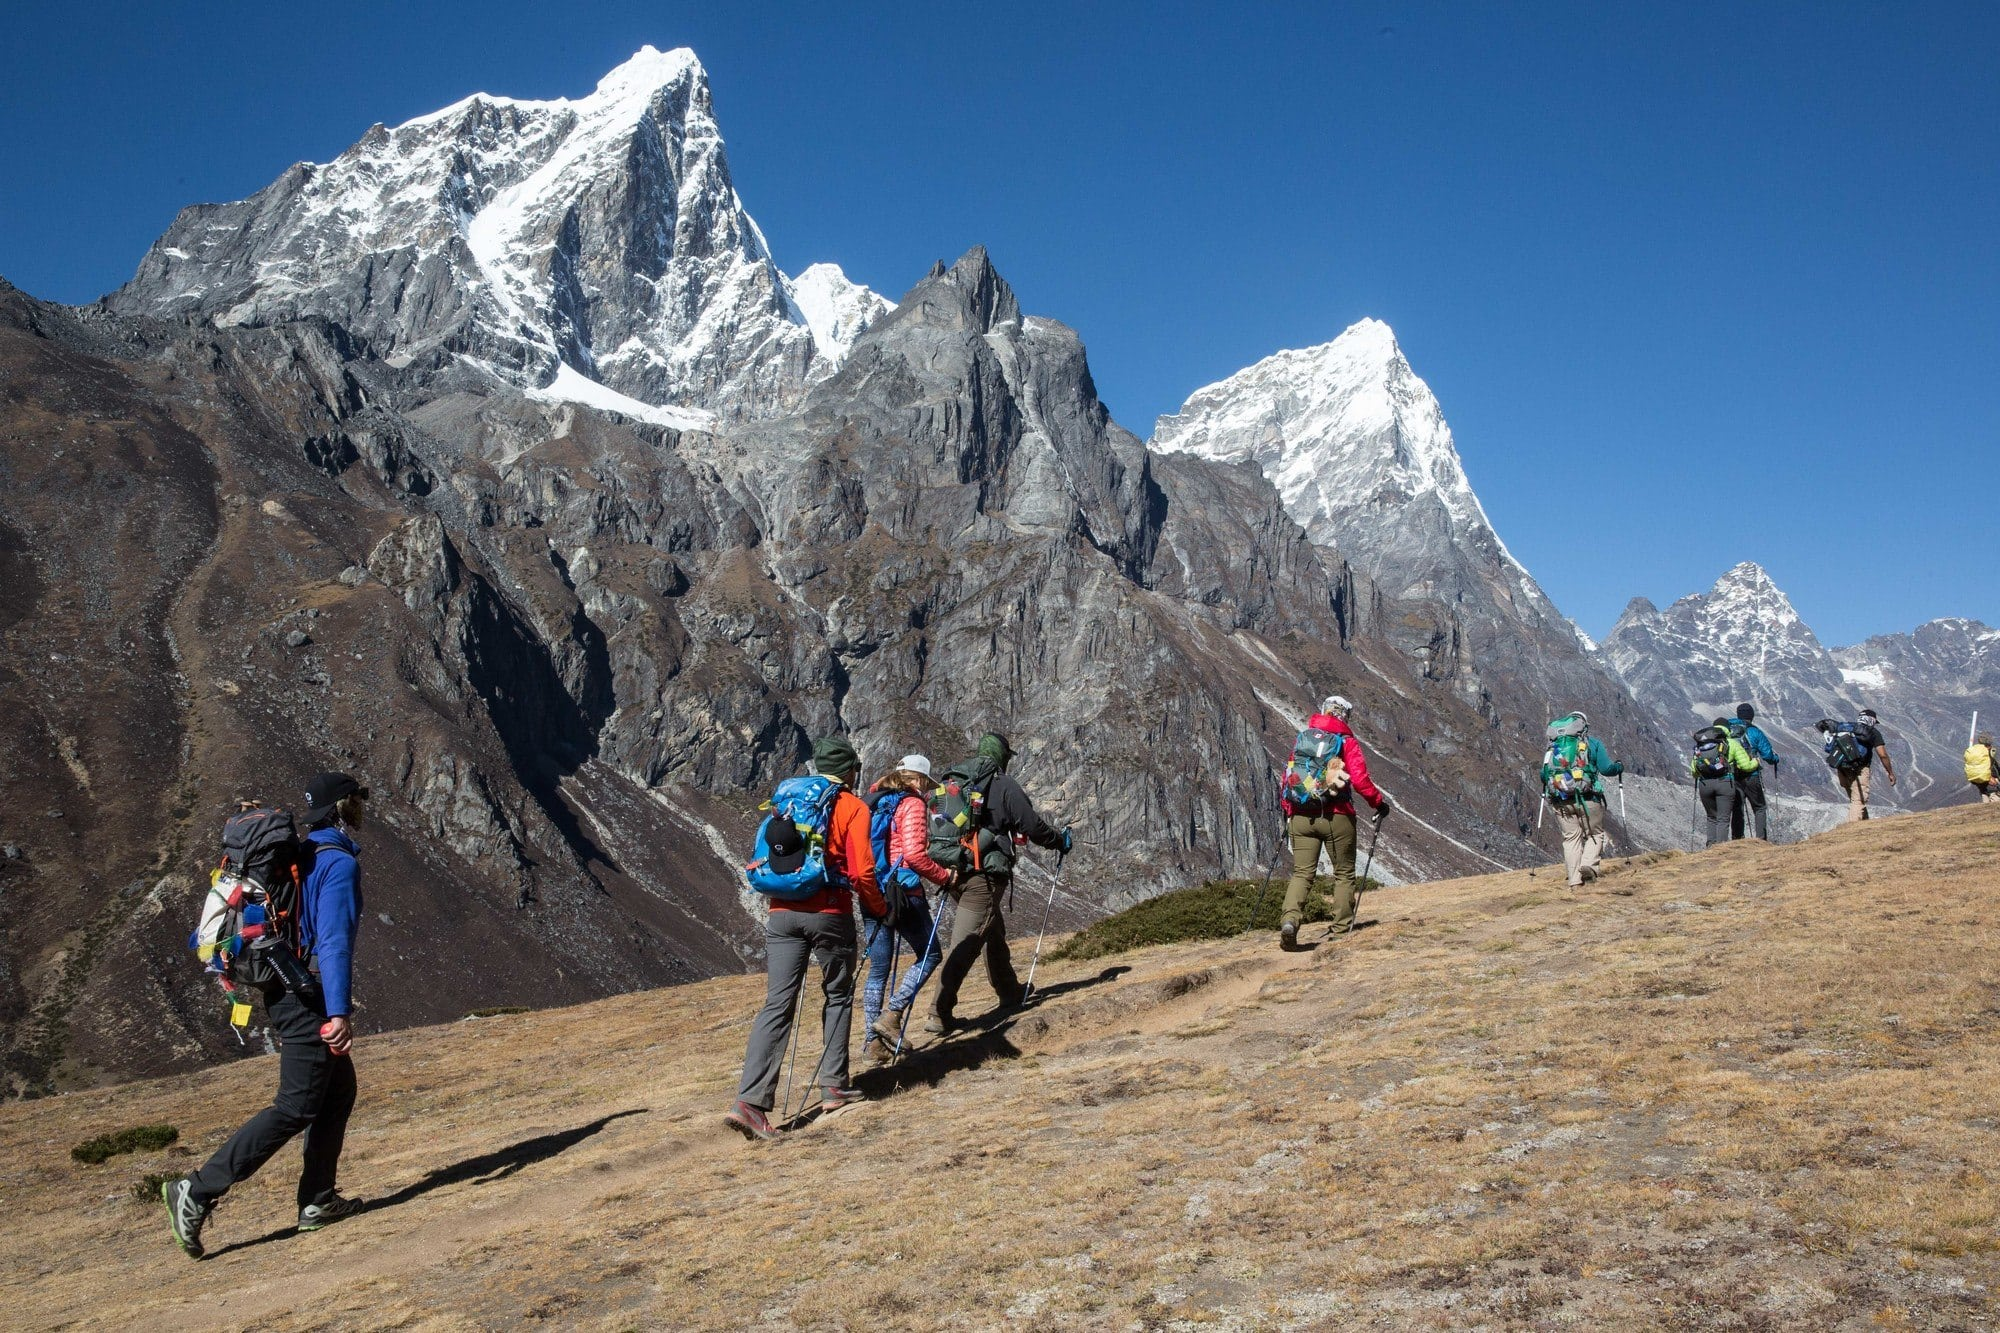 The most common Everest Base Camp trek questions answered! Learn all the logistics - guided vs independent, altitude sickness, transportation, gear & more.